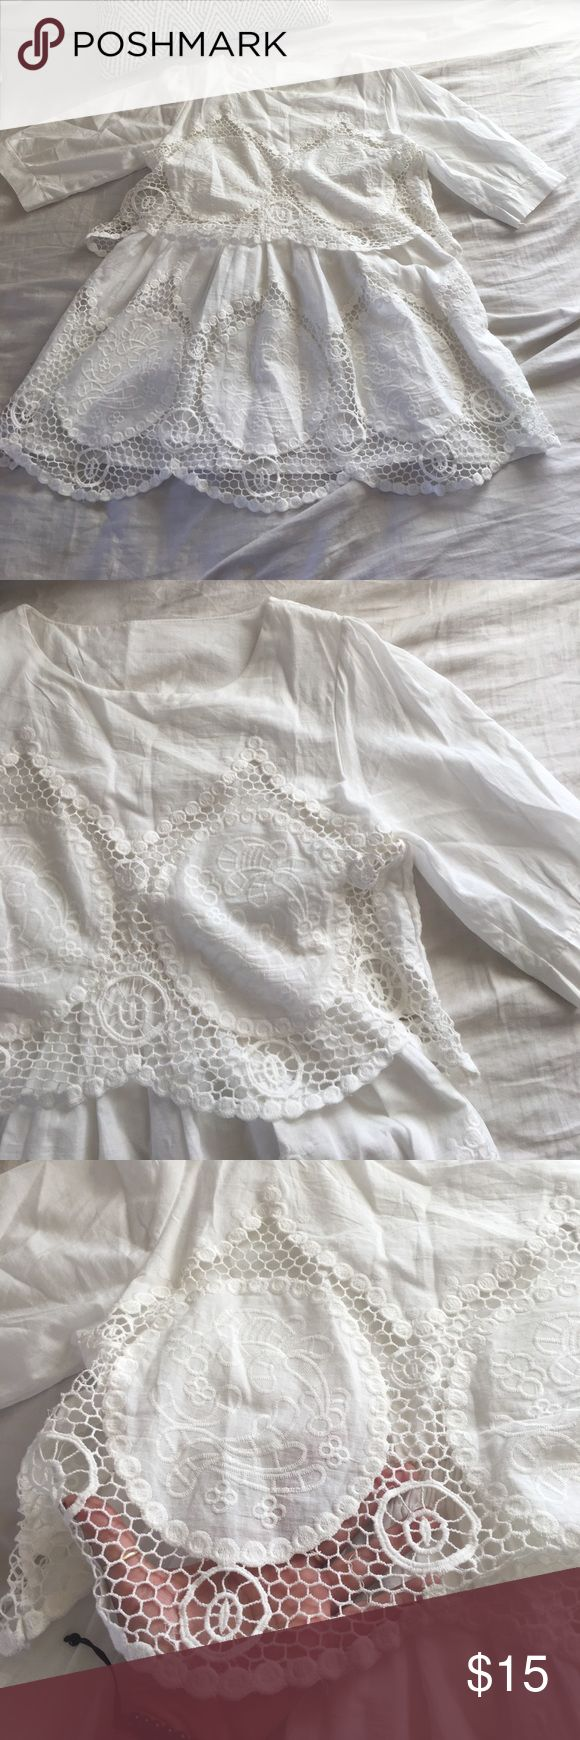 || Petite Summer Crochet Dress || Bought online but it's very petite. I'm 5 ft and it's barely below my butt. For someone shorter or can be styled with something longer underneath! The crochet was very weak towards the button of the skirt. Was sewn with a light beige. Barely noticeable. Never worn. No tag. Dresses Mini